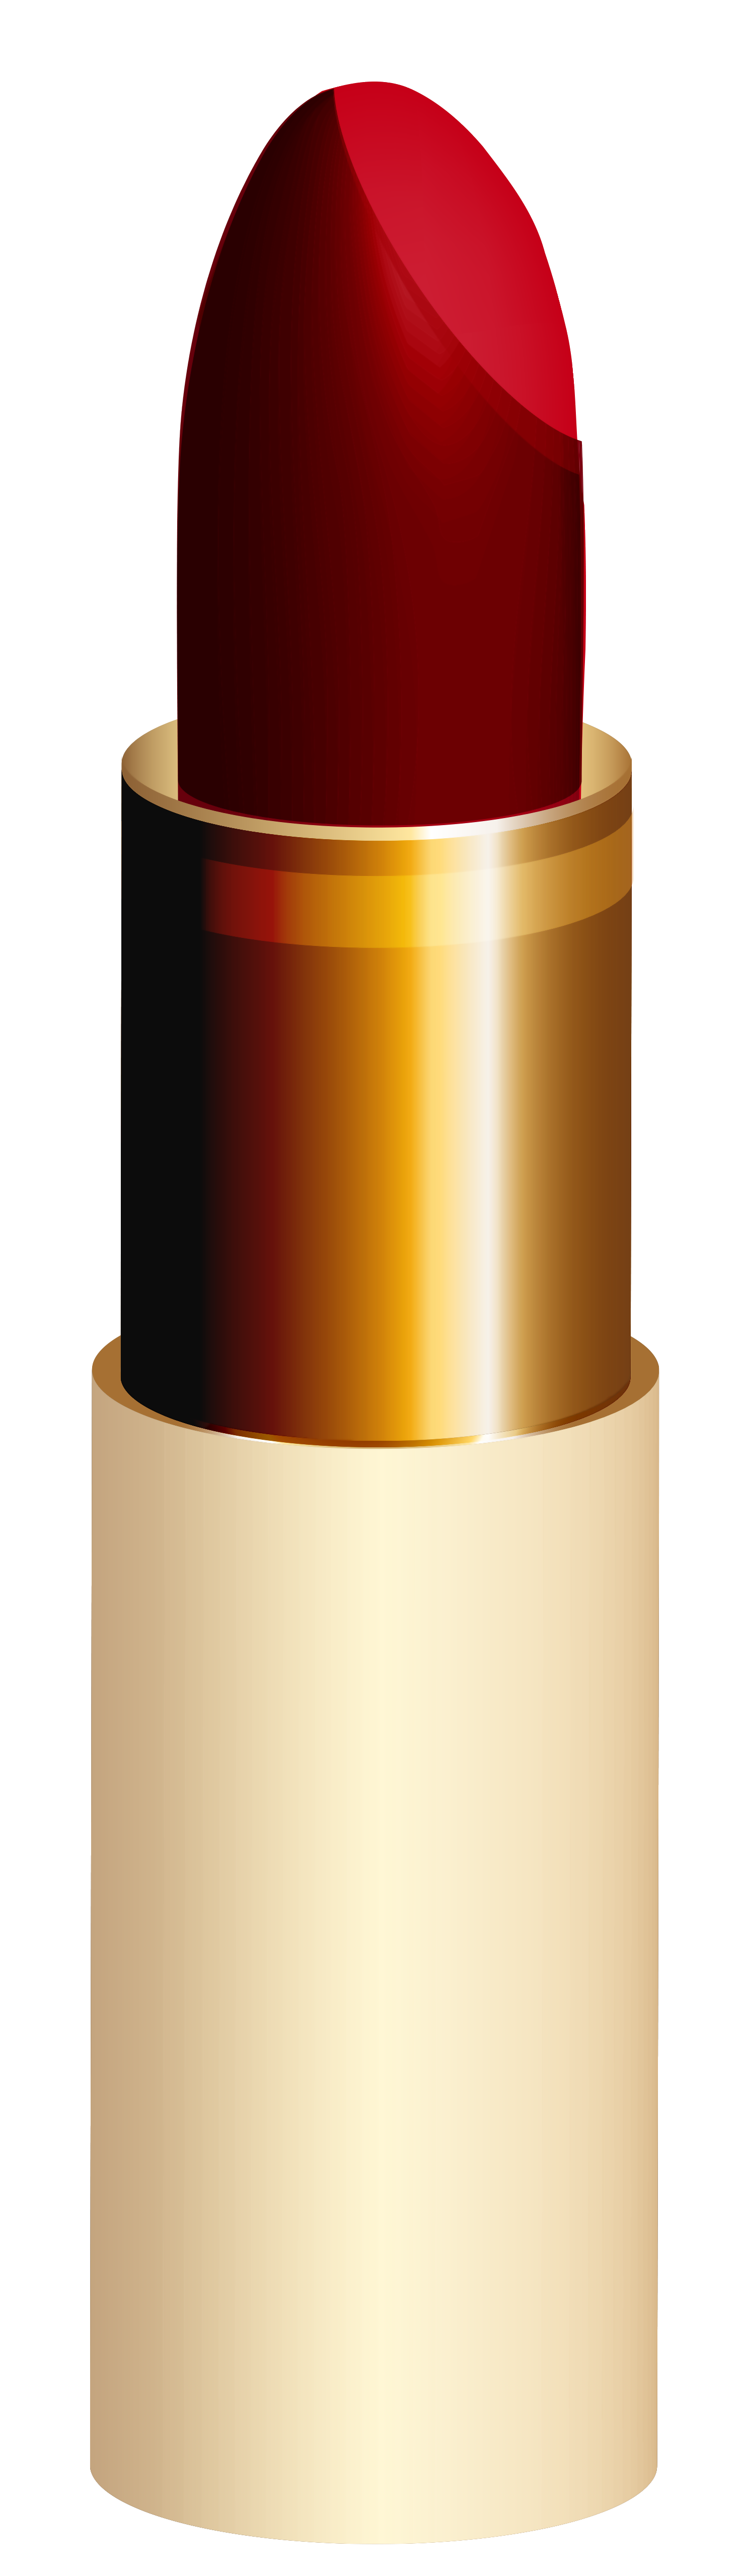 Red png picture gallery. Lipstick clipart clear background